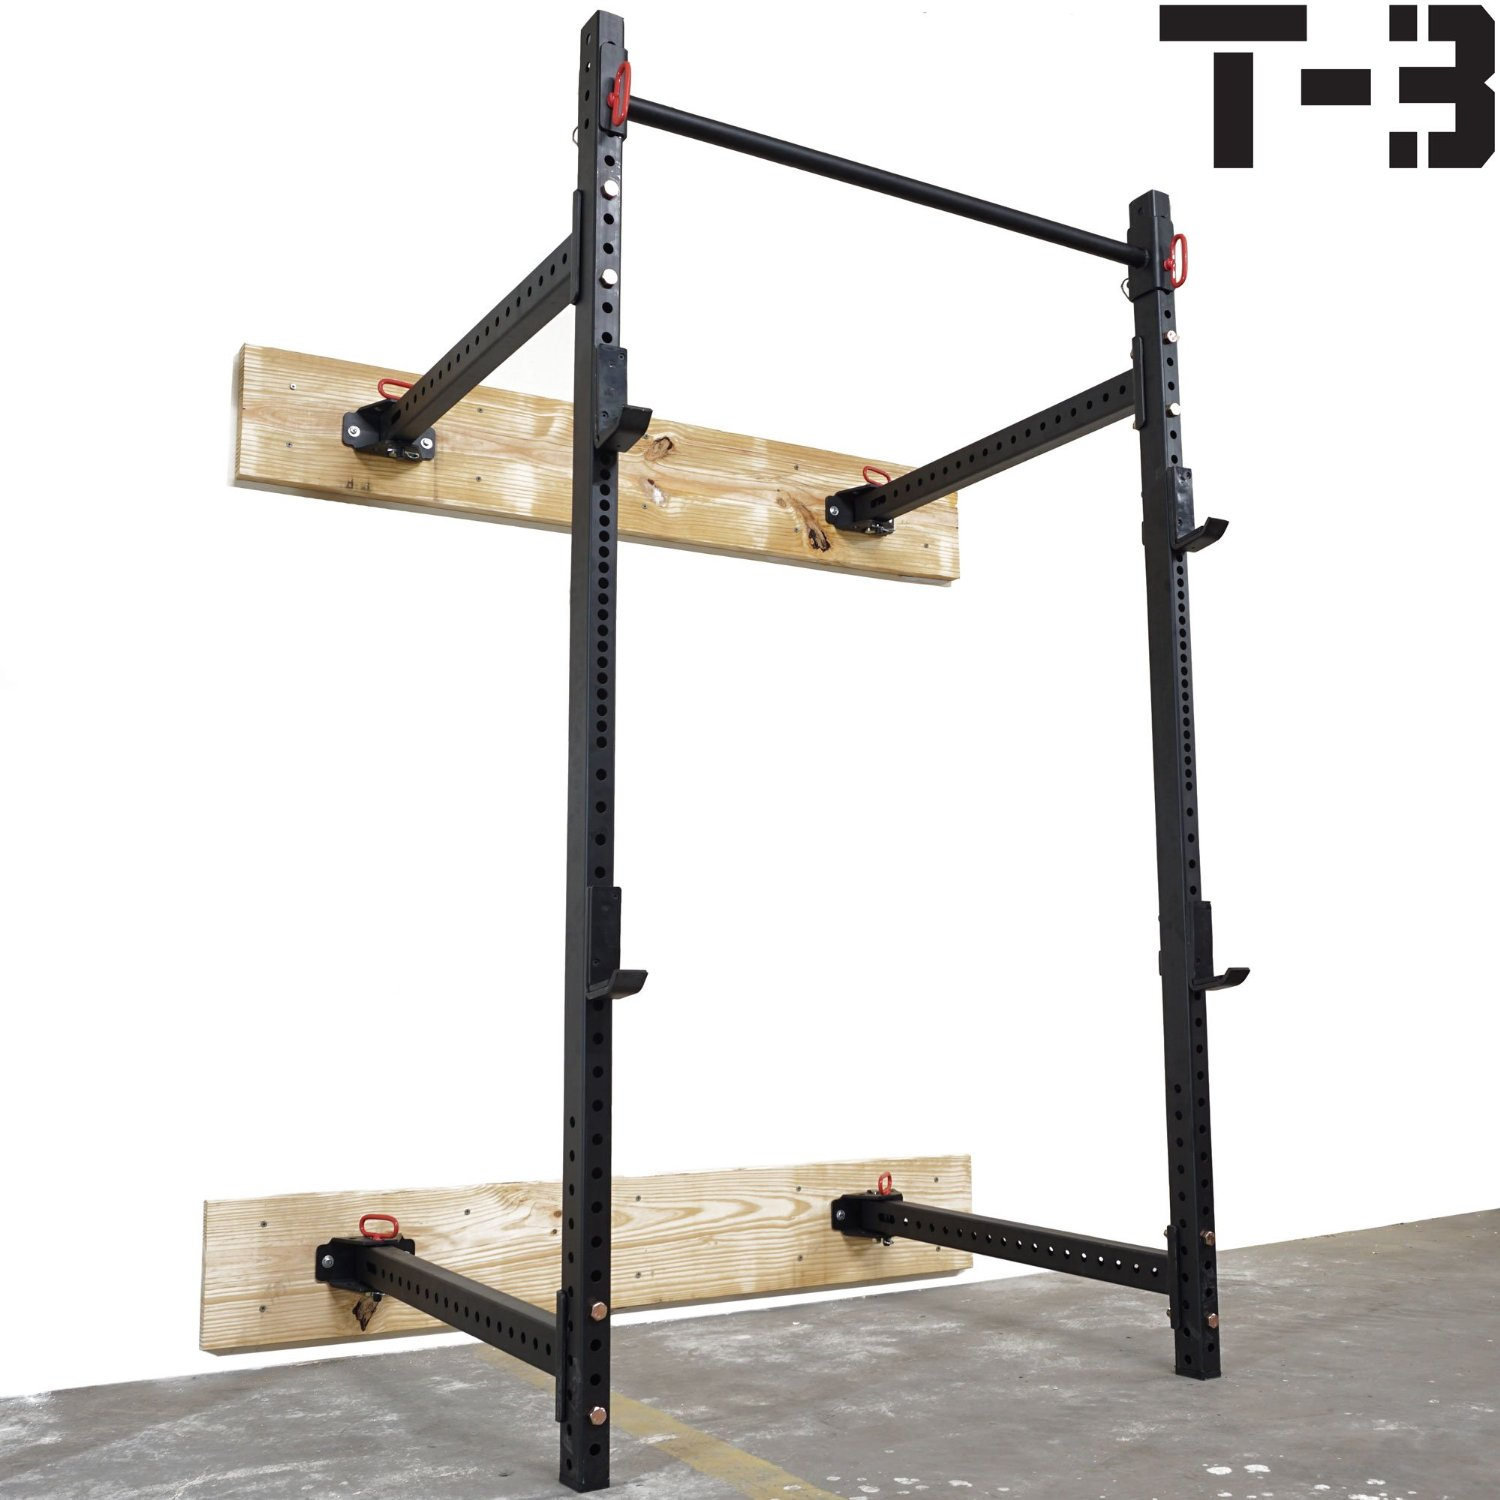 Best squat rack for 2016 cross training pro for A squat rack